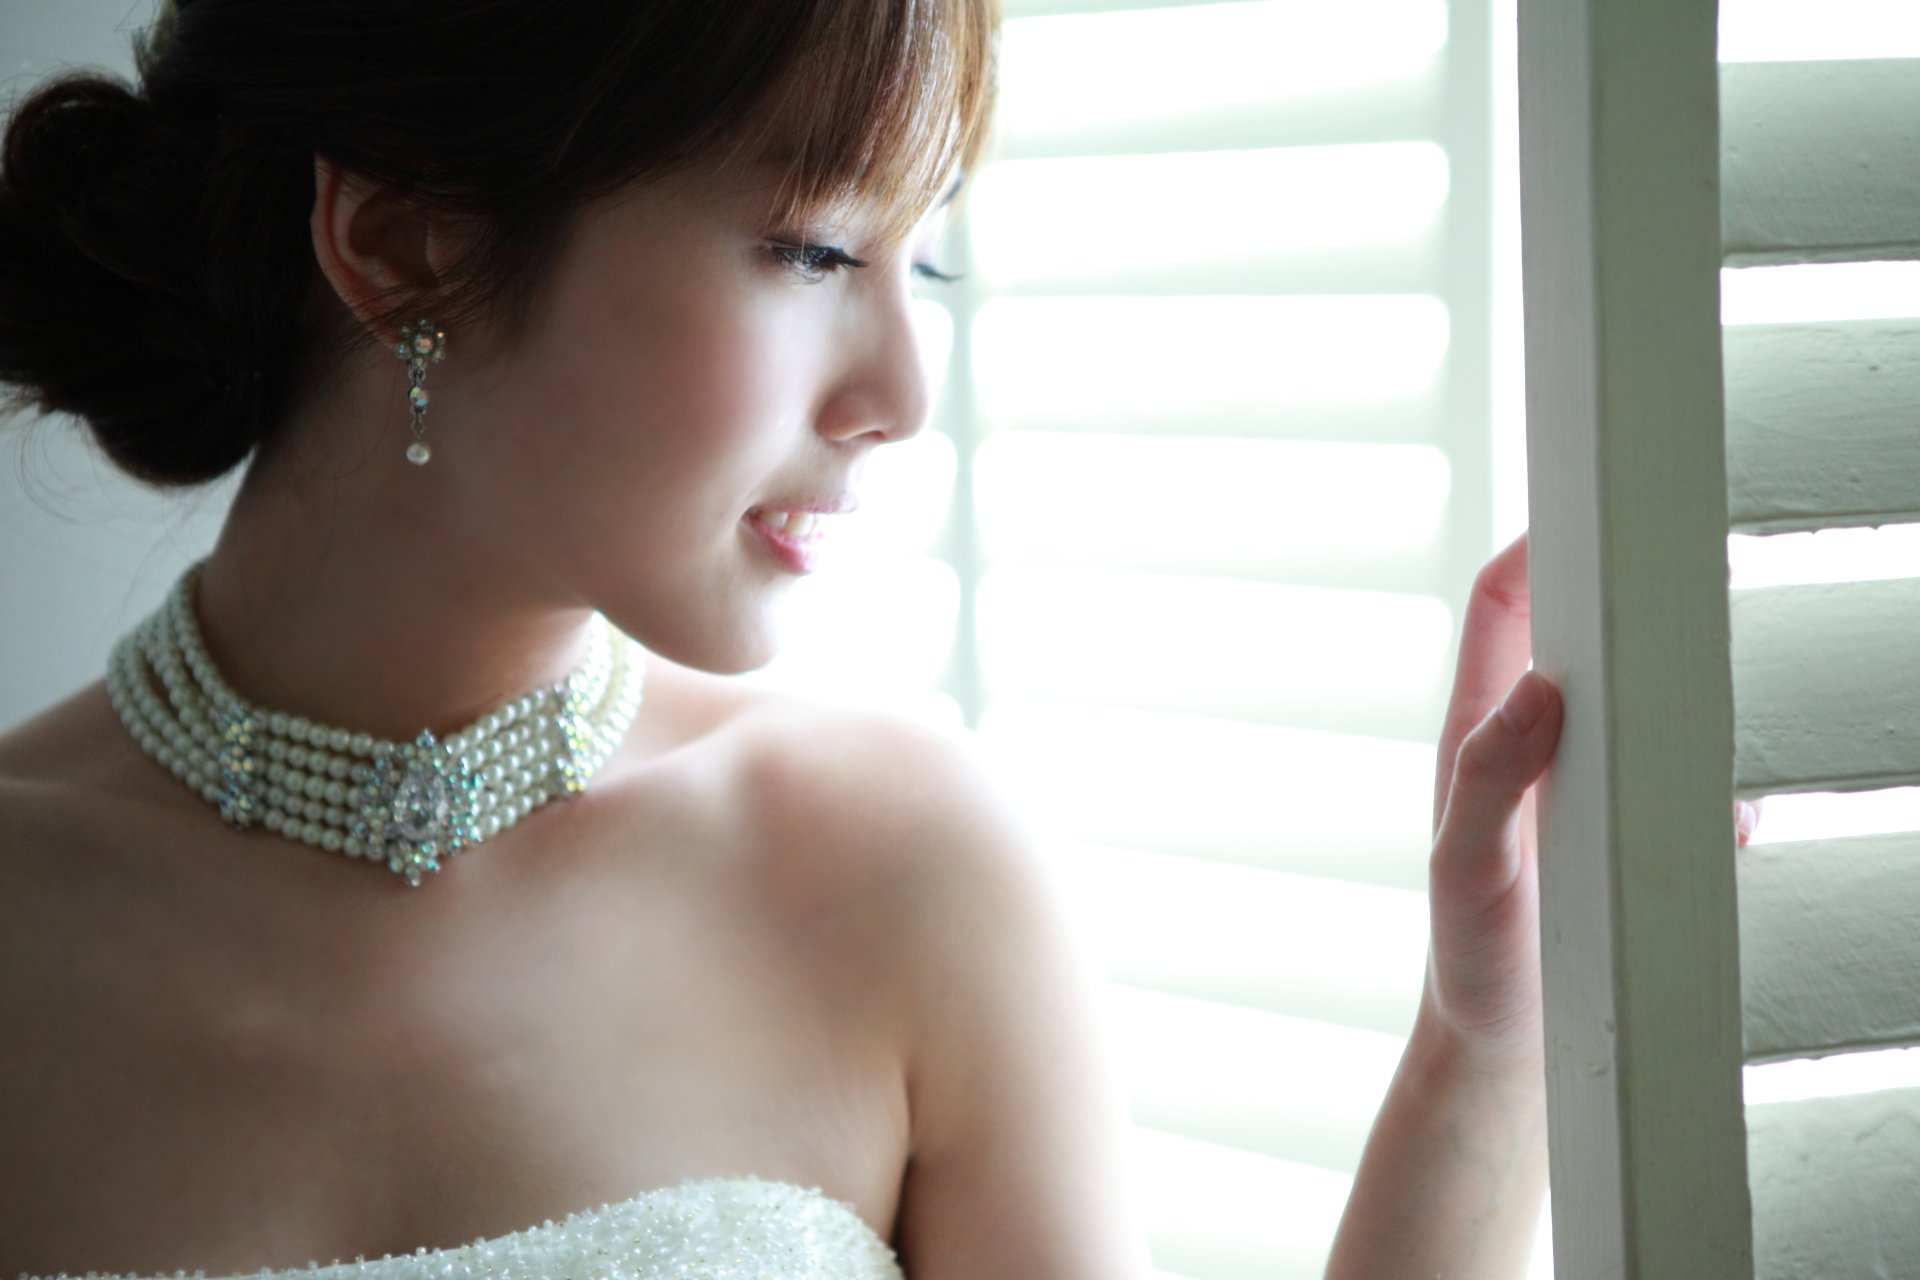 Women - Catherine  Earrings Face Asian Woman Girl Wallpaper